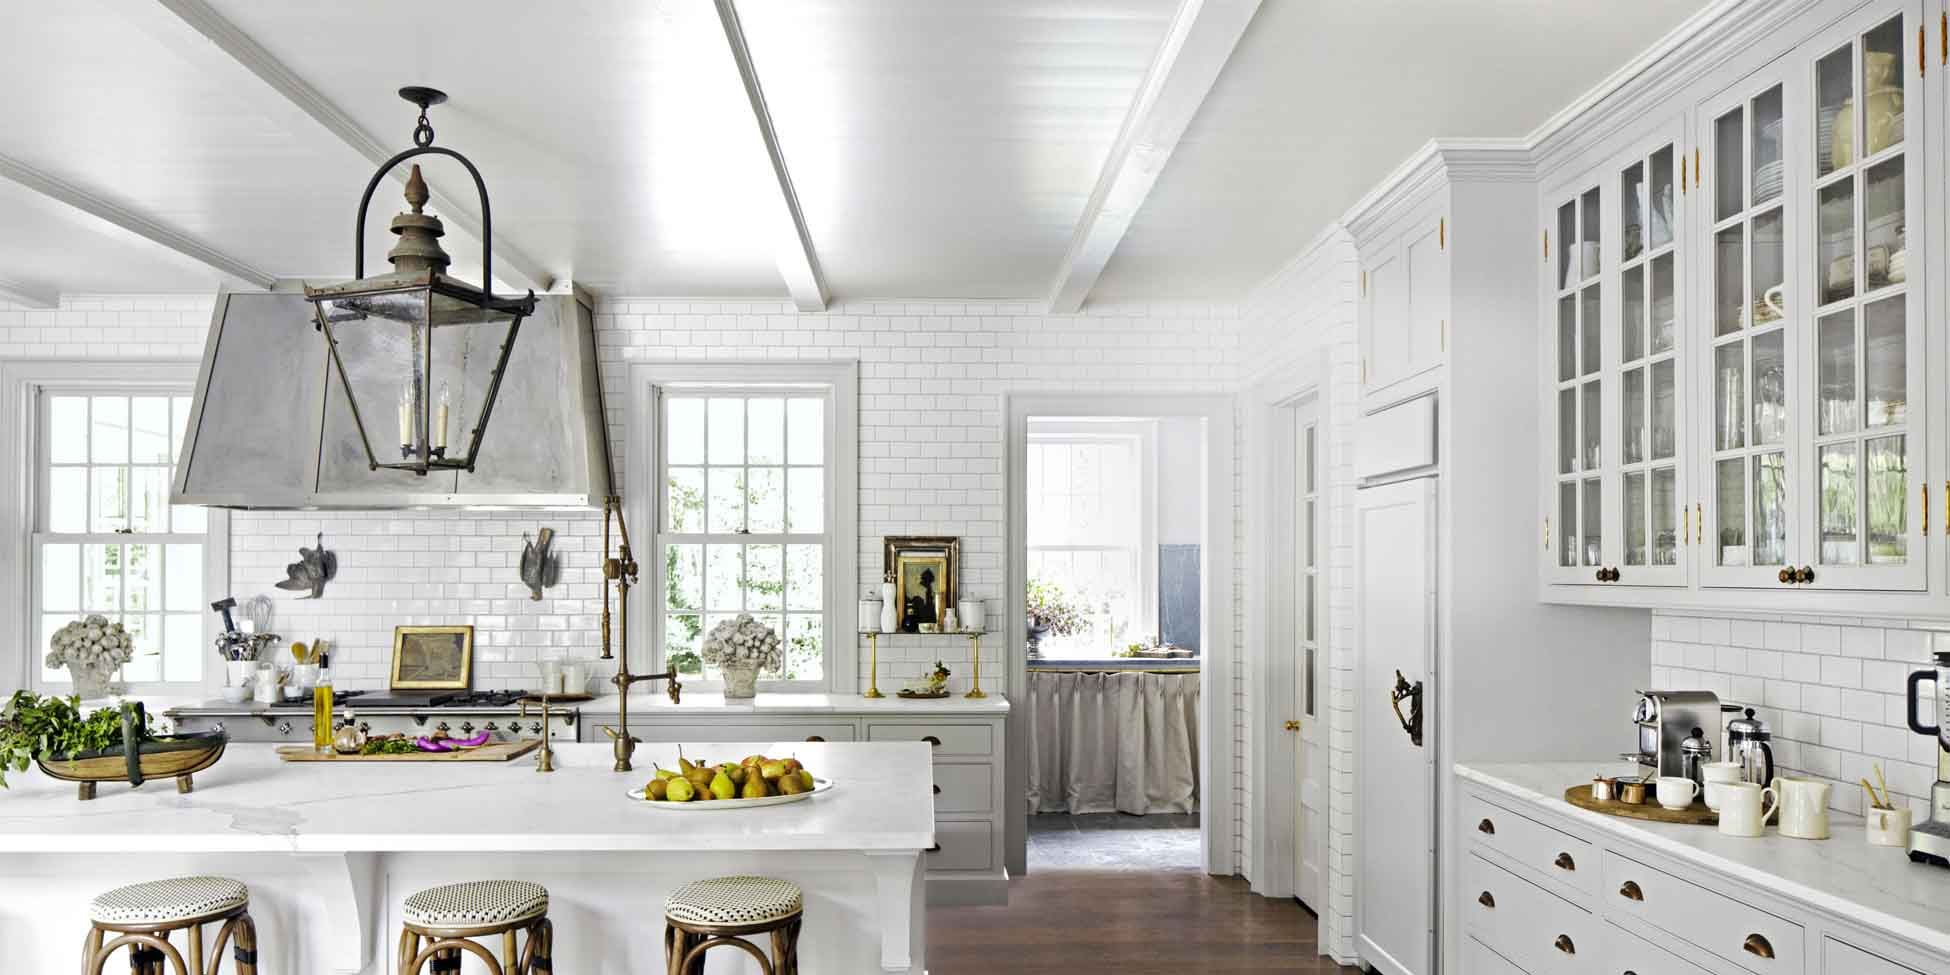 5 Important Questions To Ask Yourself Before Committing To An All White Kitchen